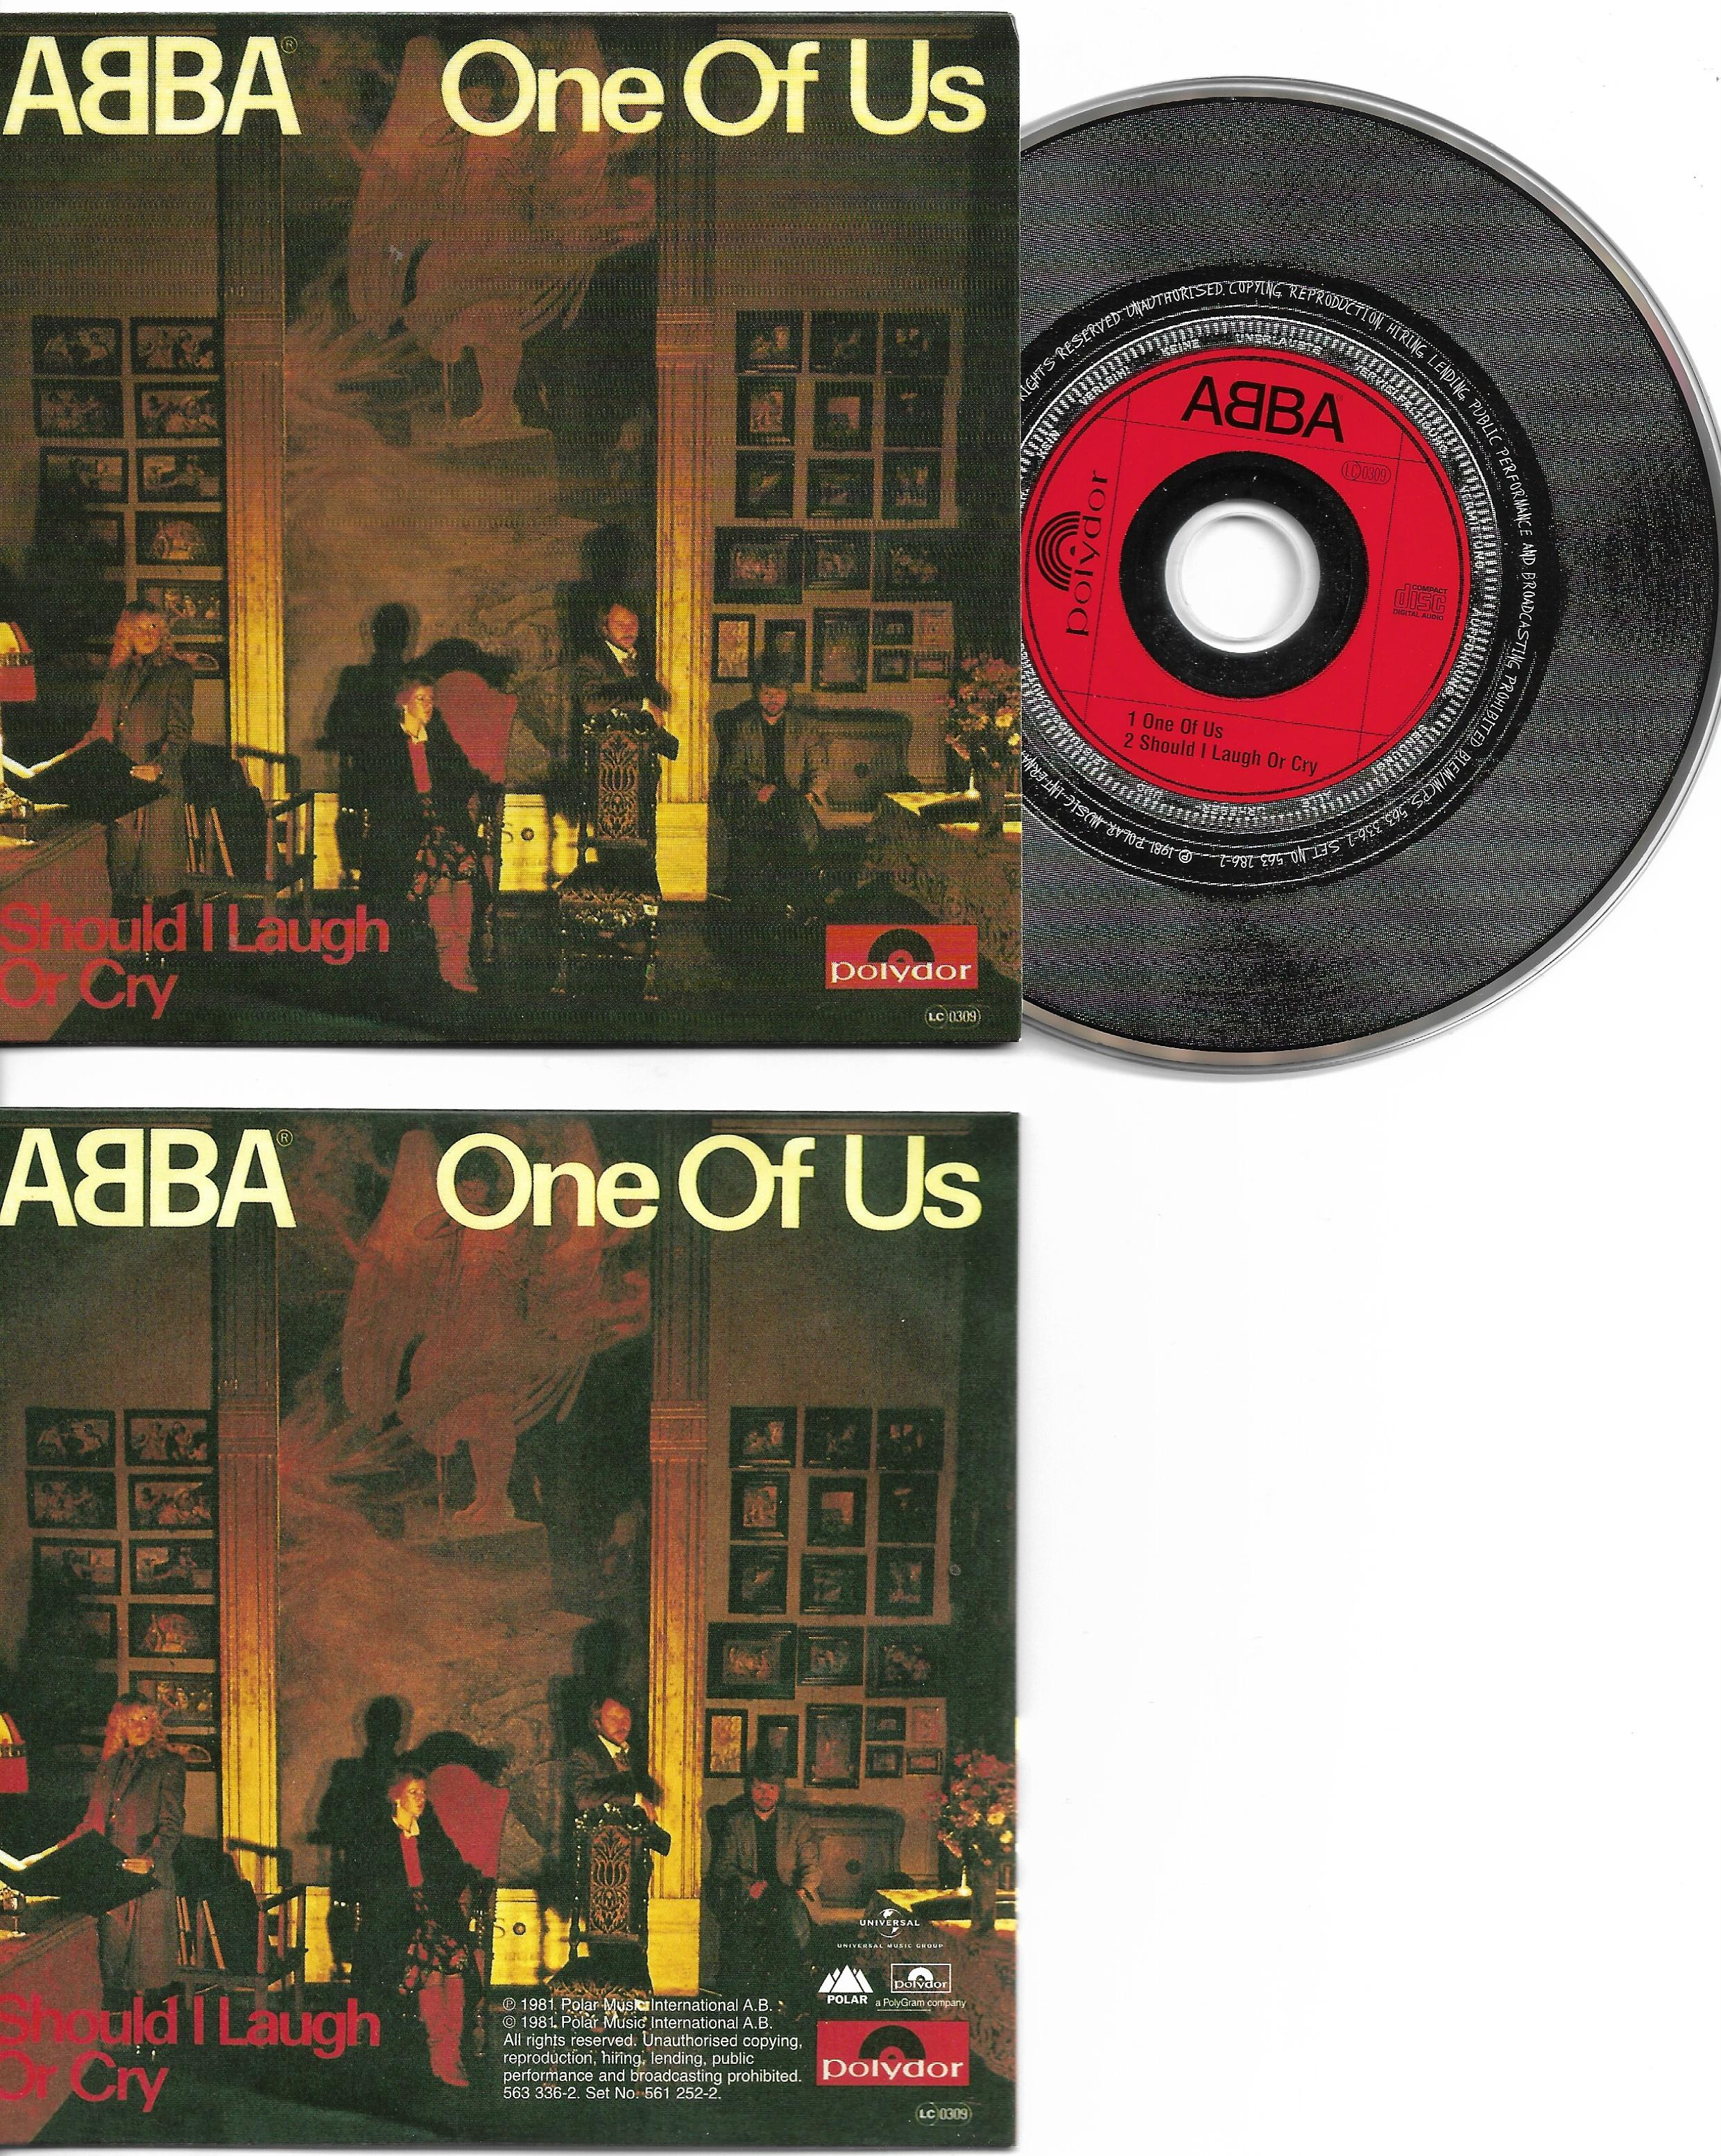 ABBA - One Of Us - Should I Laugh Or Cry 2-track Card Sleeve